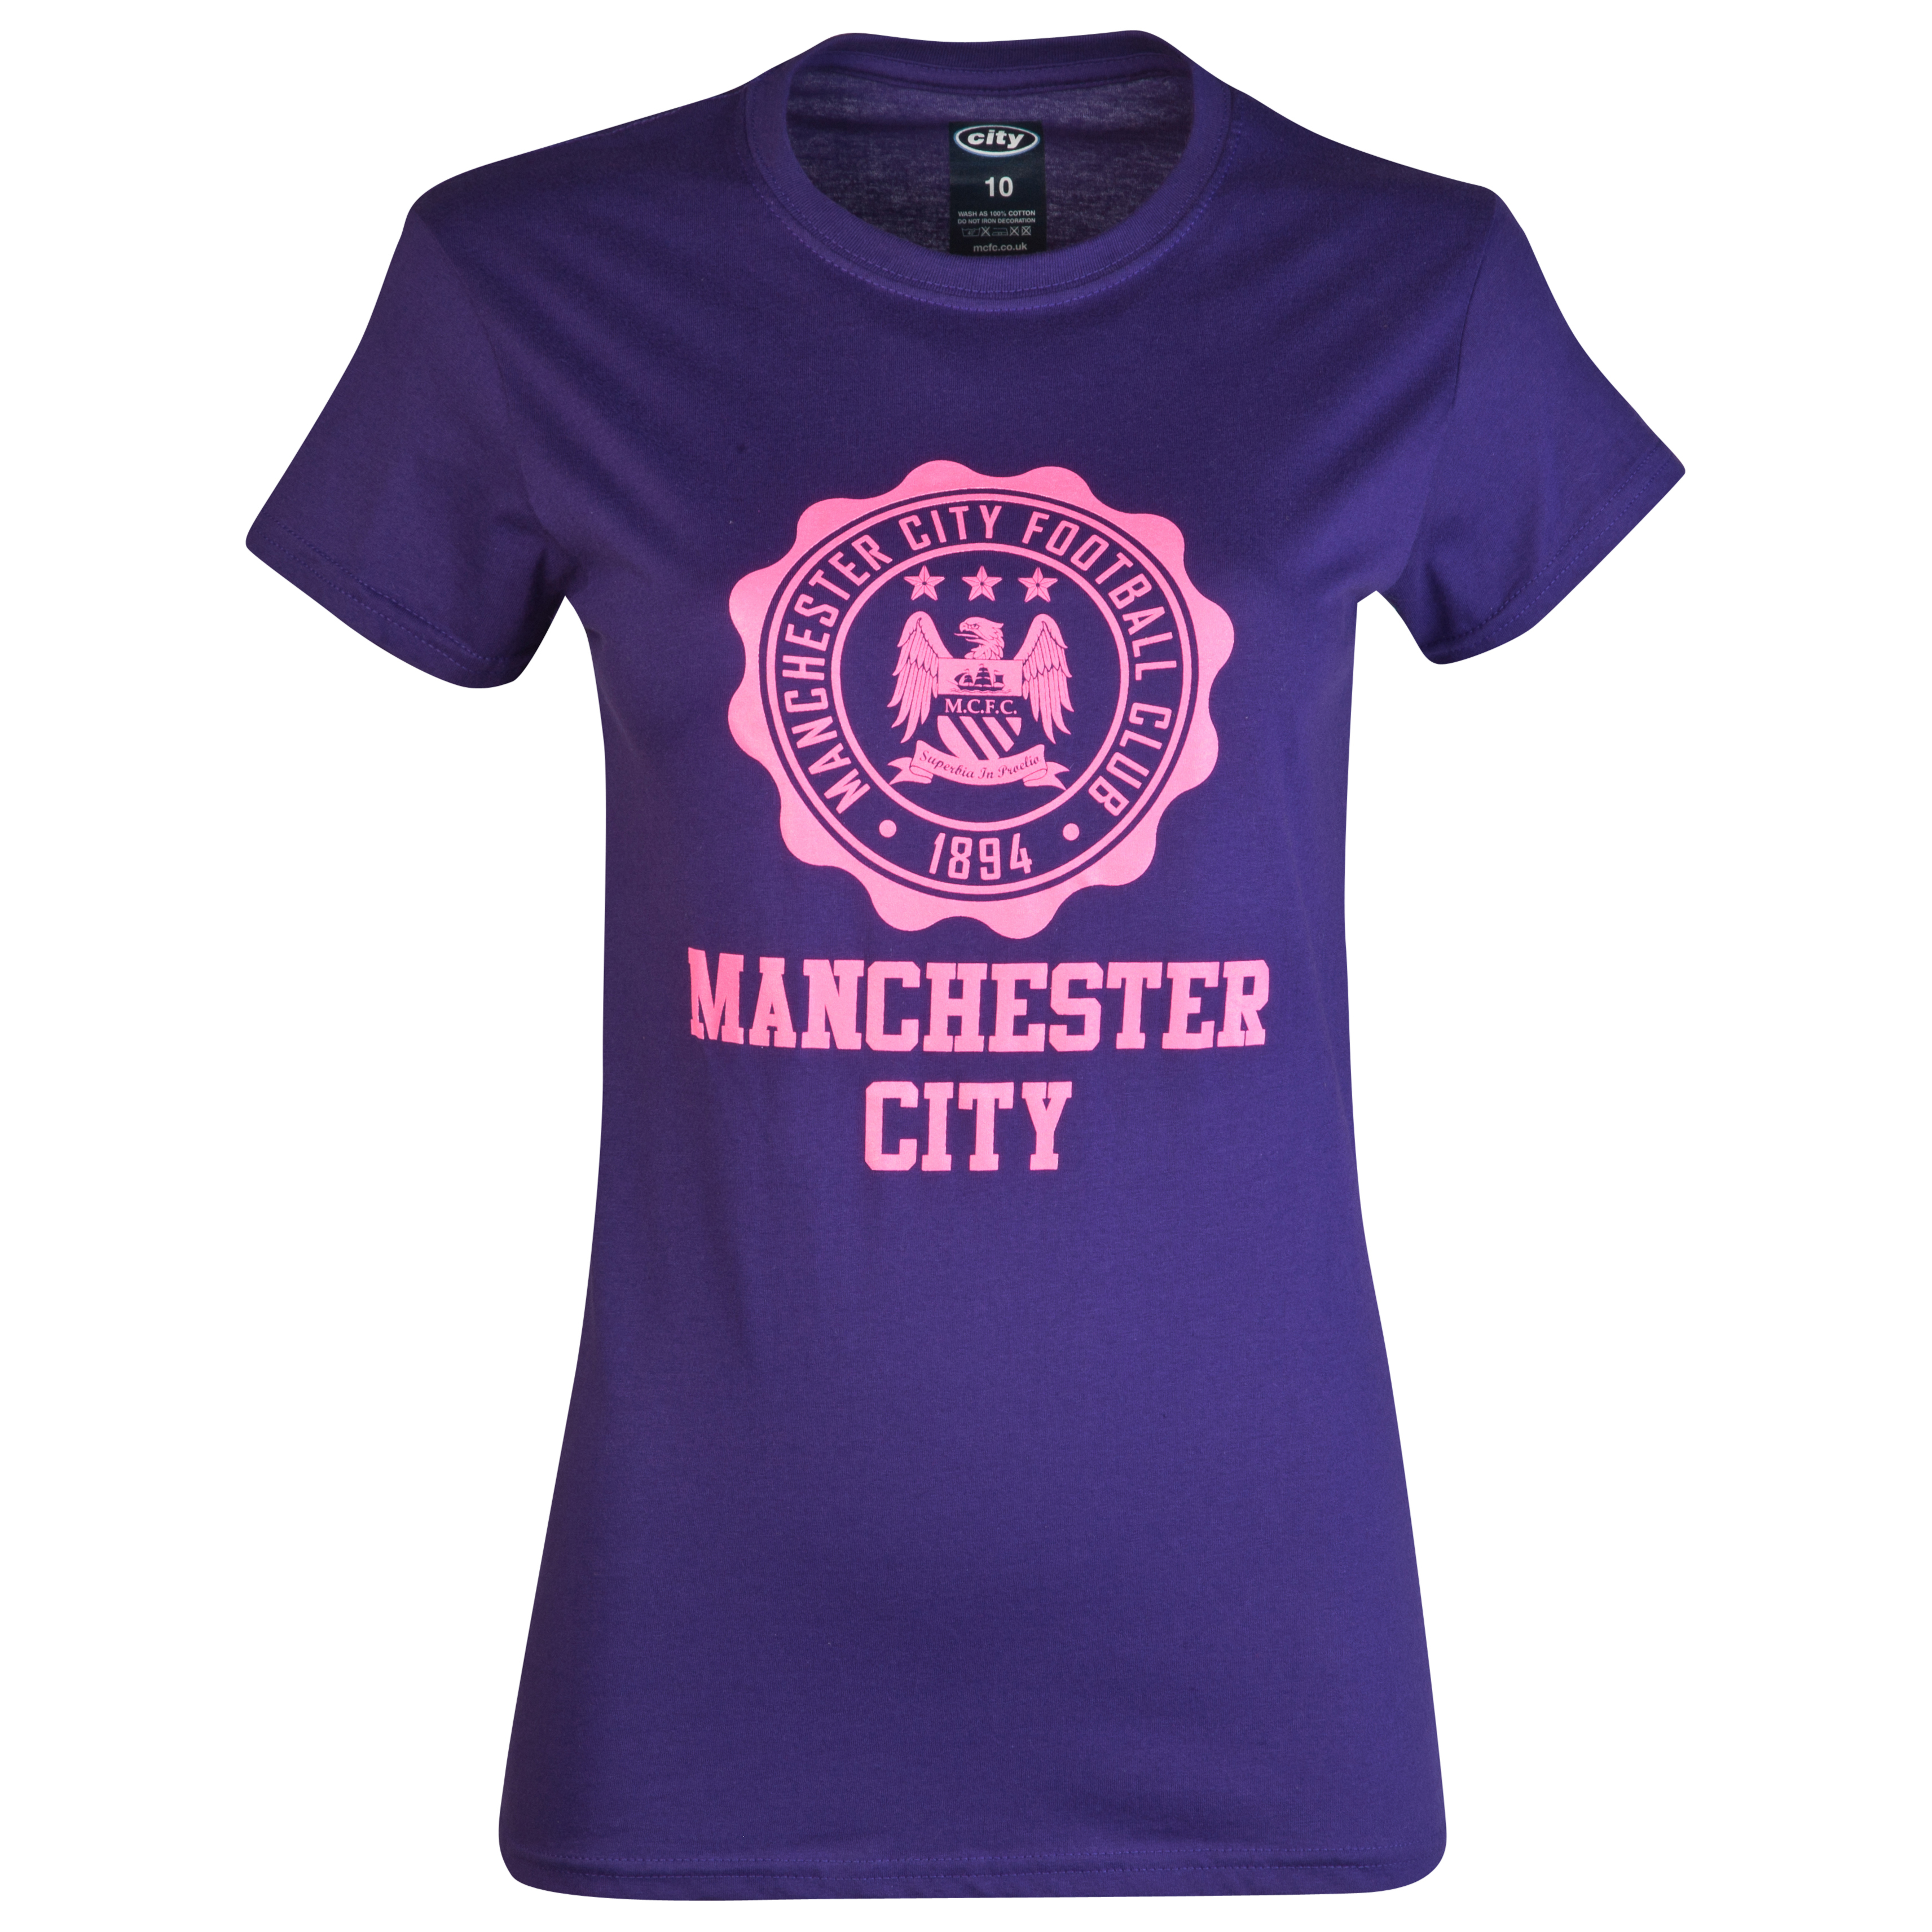 Womens 2 for £20 T-shirts